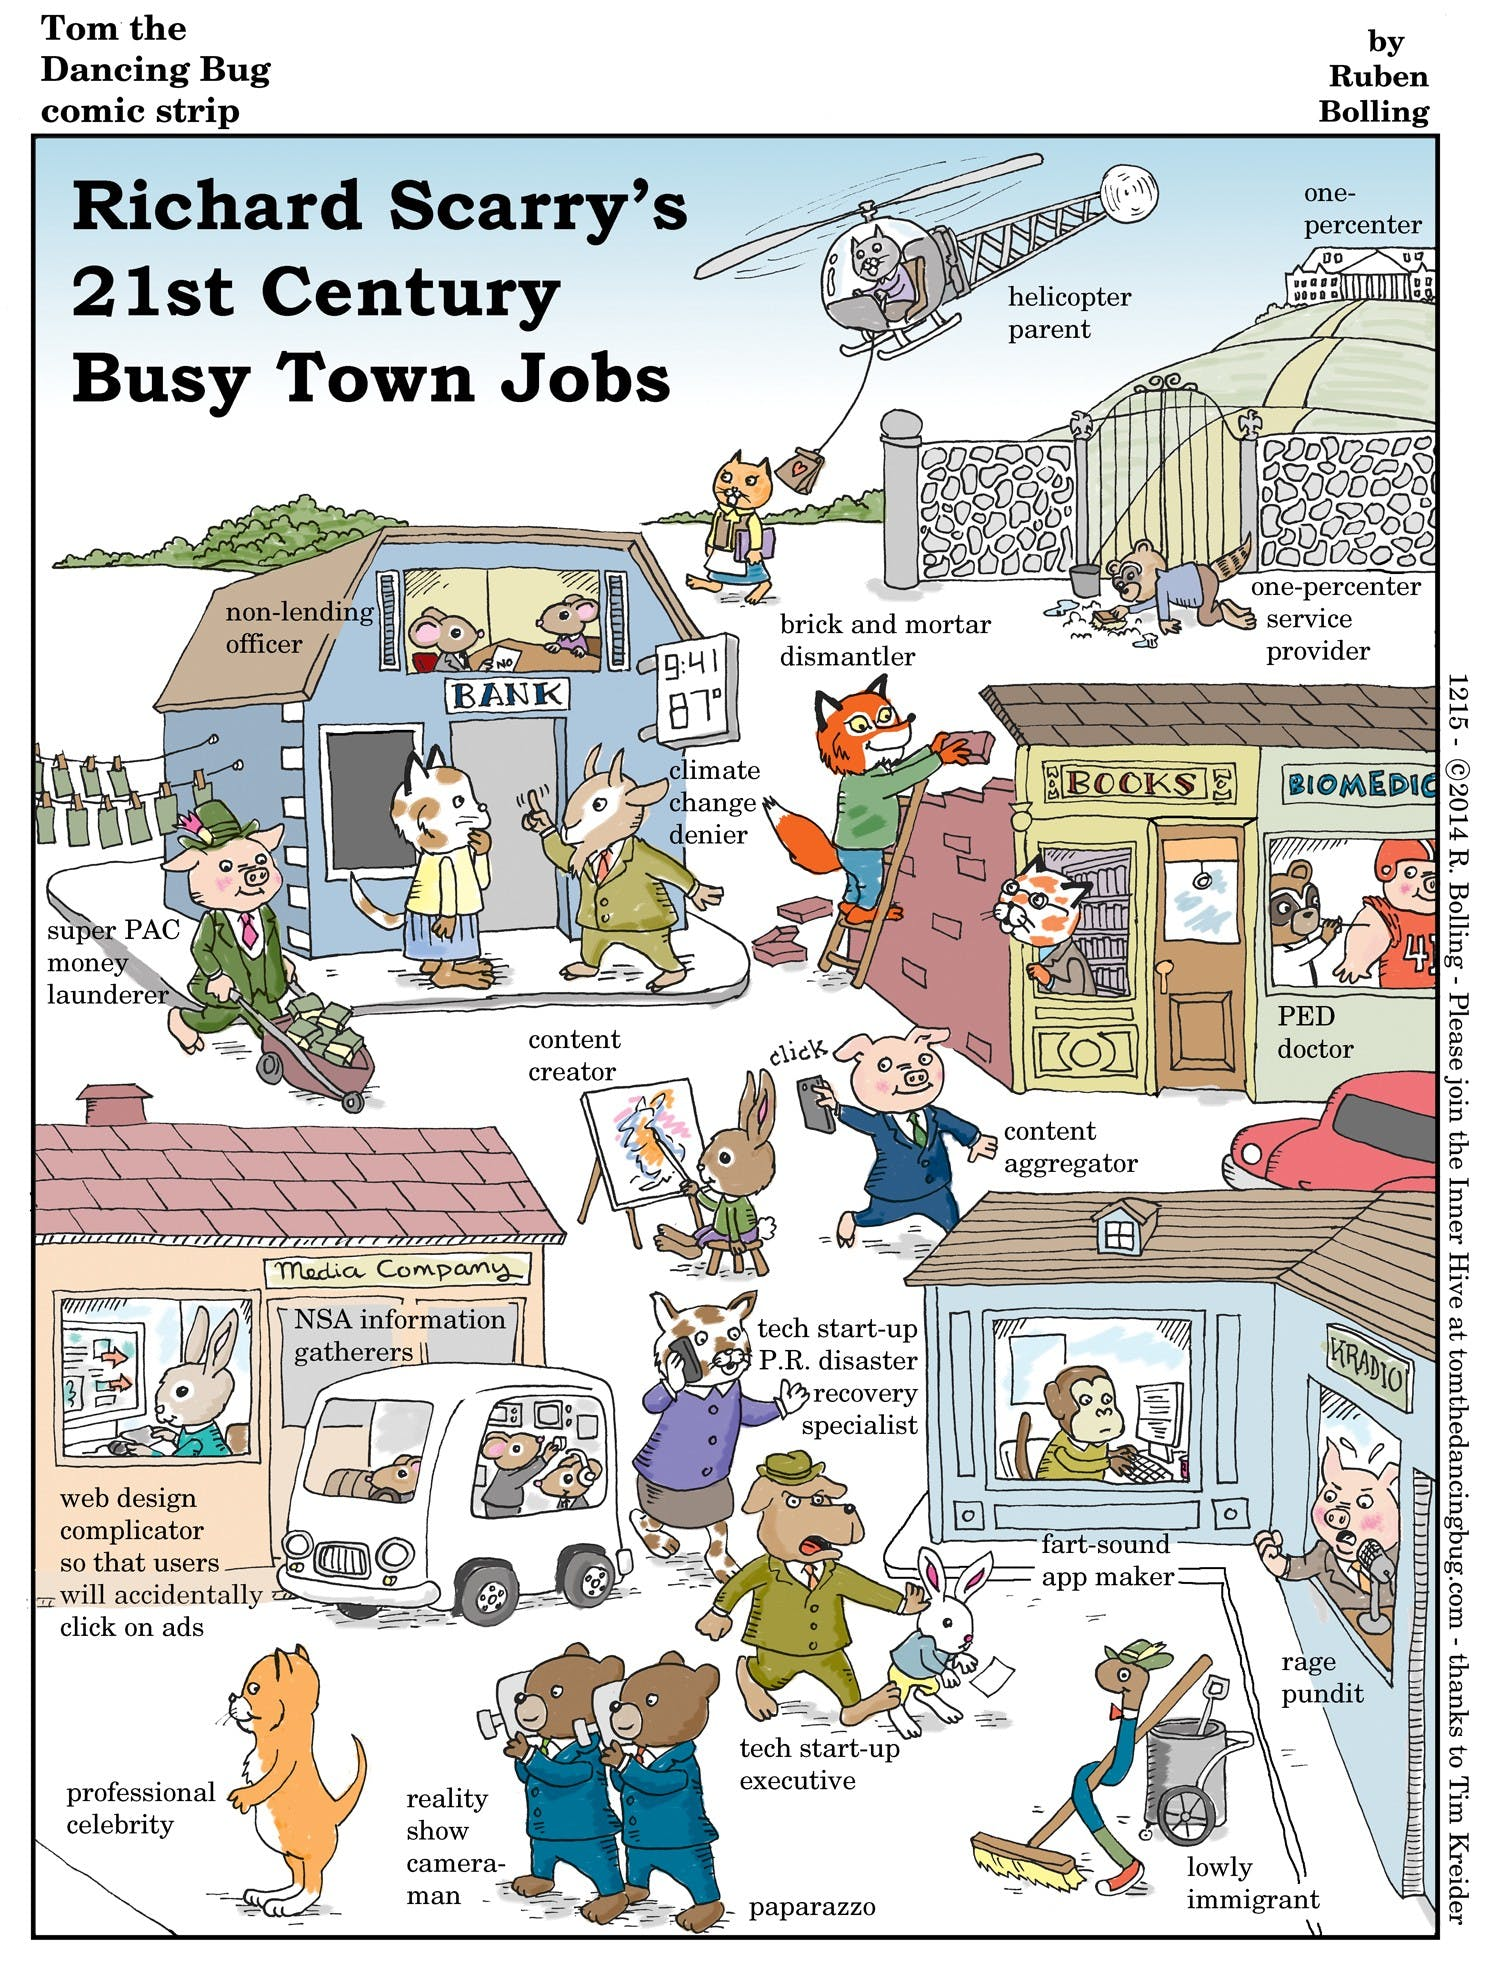 Richard Scarry's 21st Century Busy Town Jobs - by Ruben